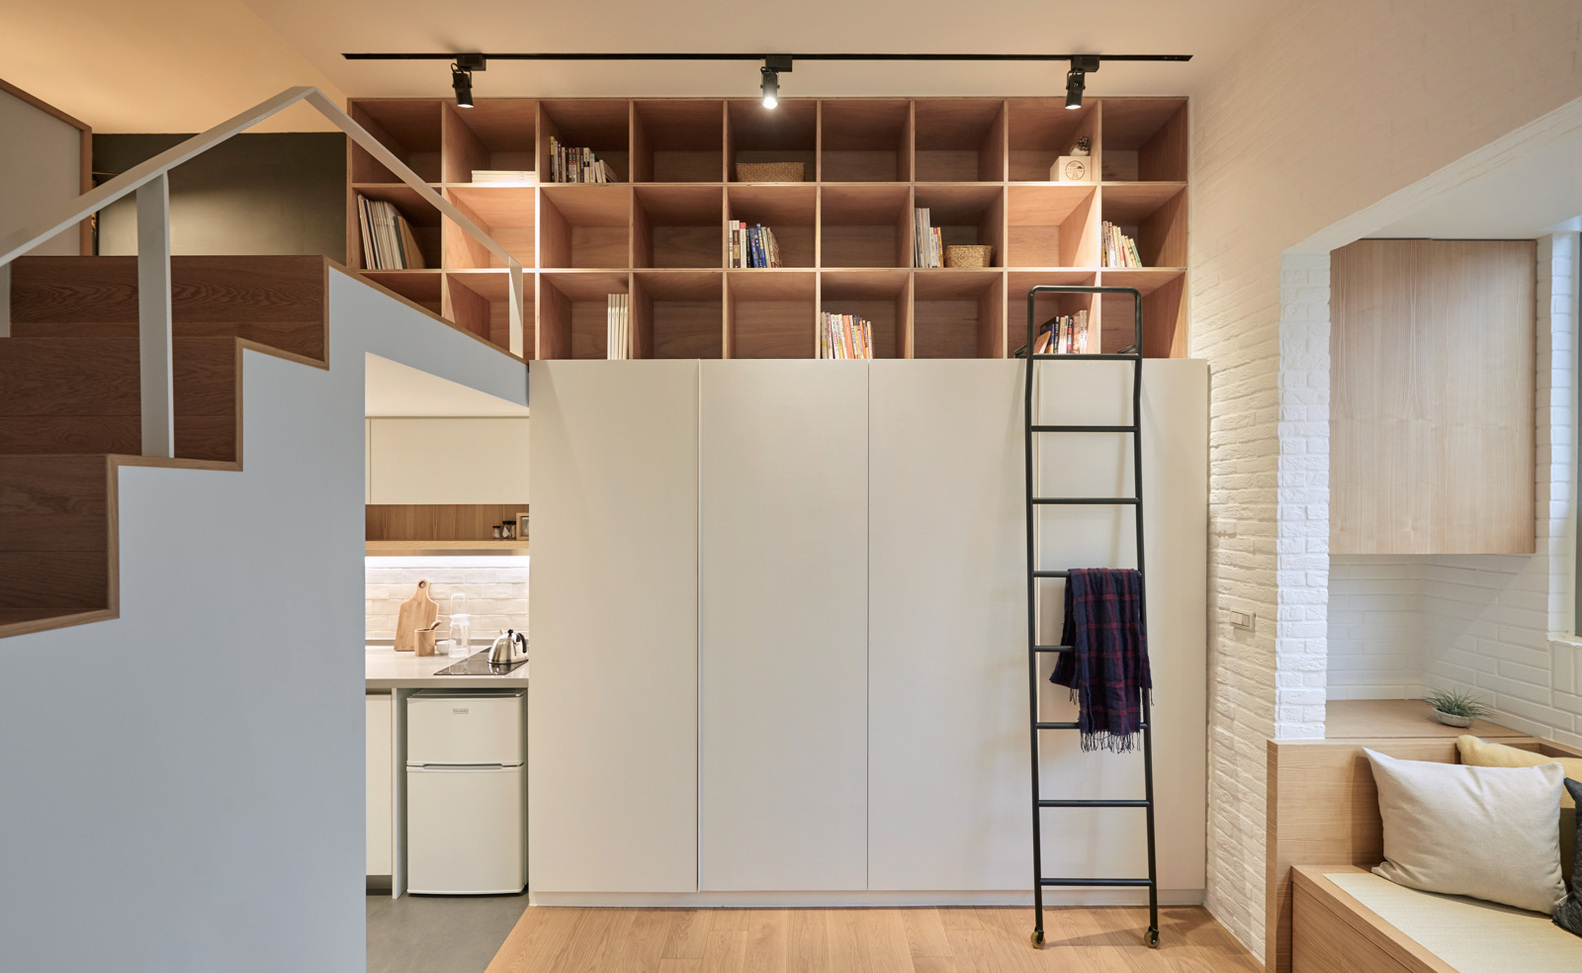 Gallery of Space-Saving Solutions: 11 Creative Storage Ideas - 11